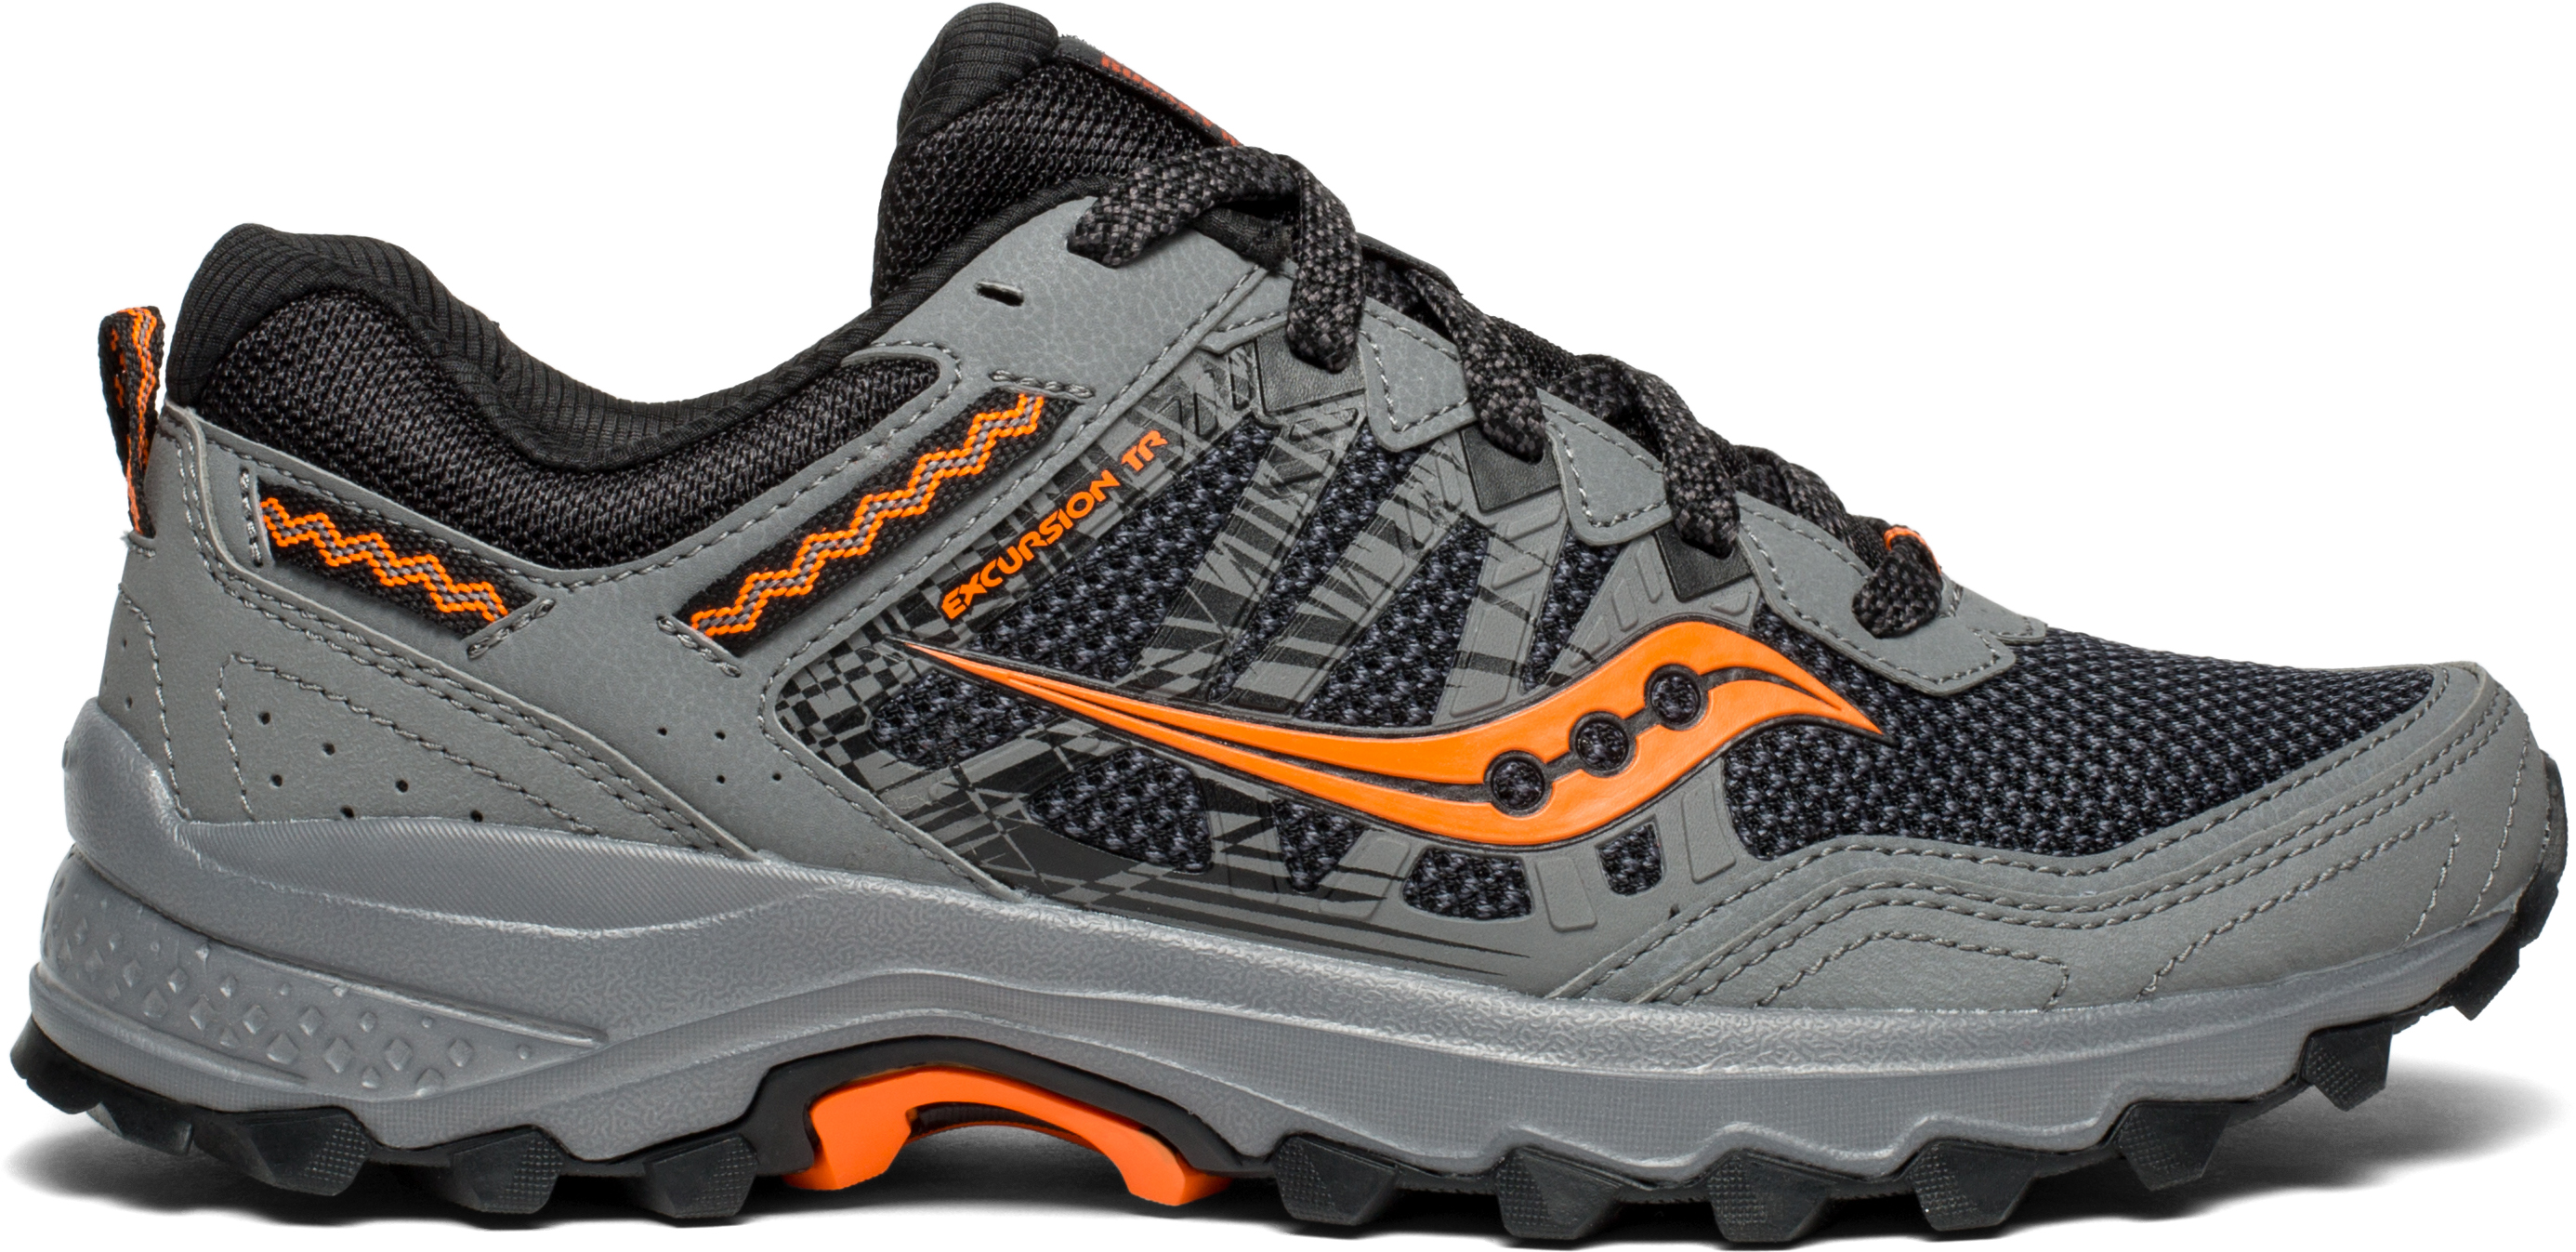 Saucony Mens Trail Excursion Shoes Running Review Tr12 Rate And QtrshdCx